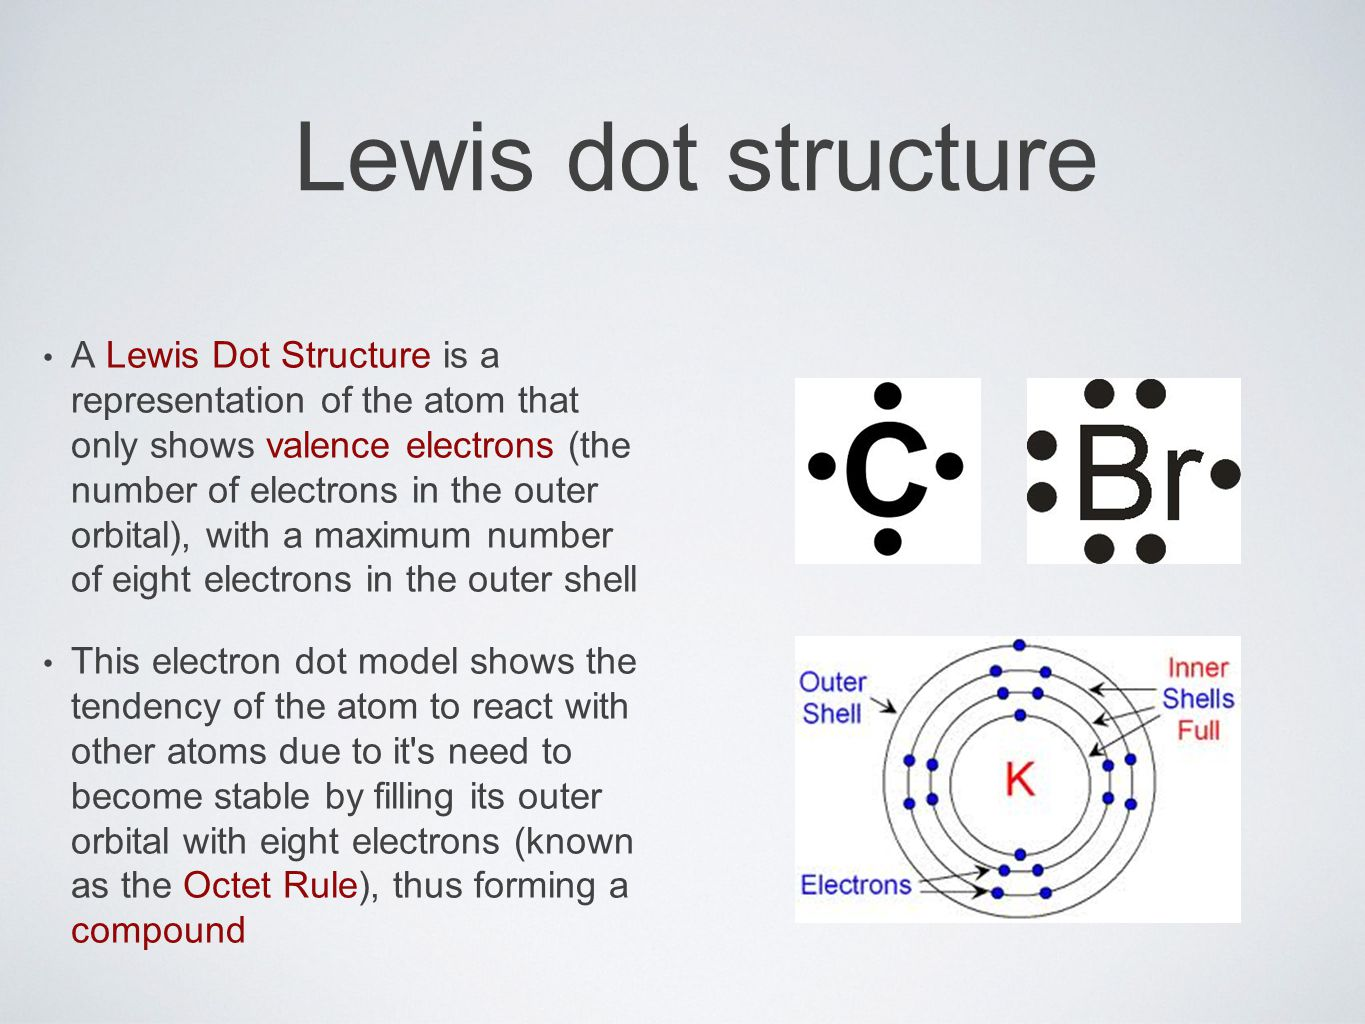 Lewis dot structure A Lewis Dot Structure is a representation of the atom that only shows valence electrons (the number of electrons in the outer orbital), with a maximum number of eight electrons in the outer shell This electron dot model shows the tendency of the atom to react with other atoms due to it s need to become stable by filling its outer orbital with eight electrons (known as the Octet Rule), thus forming a compound